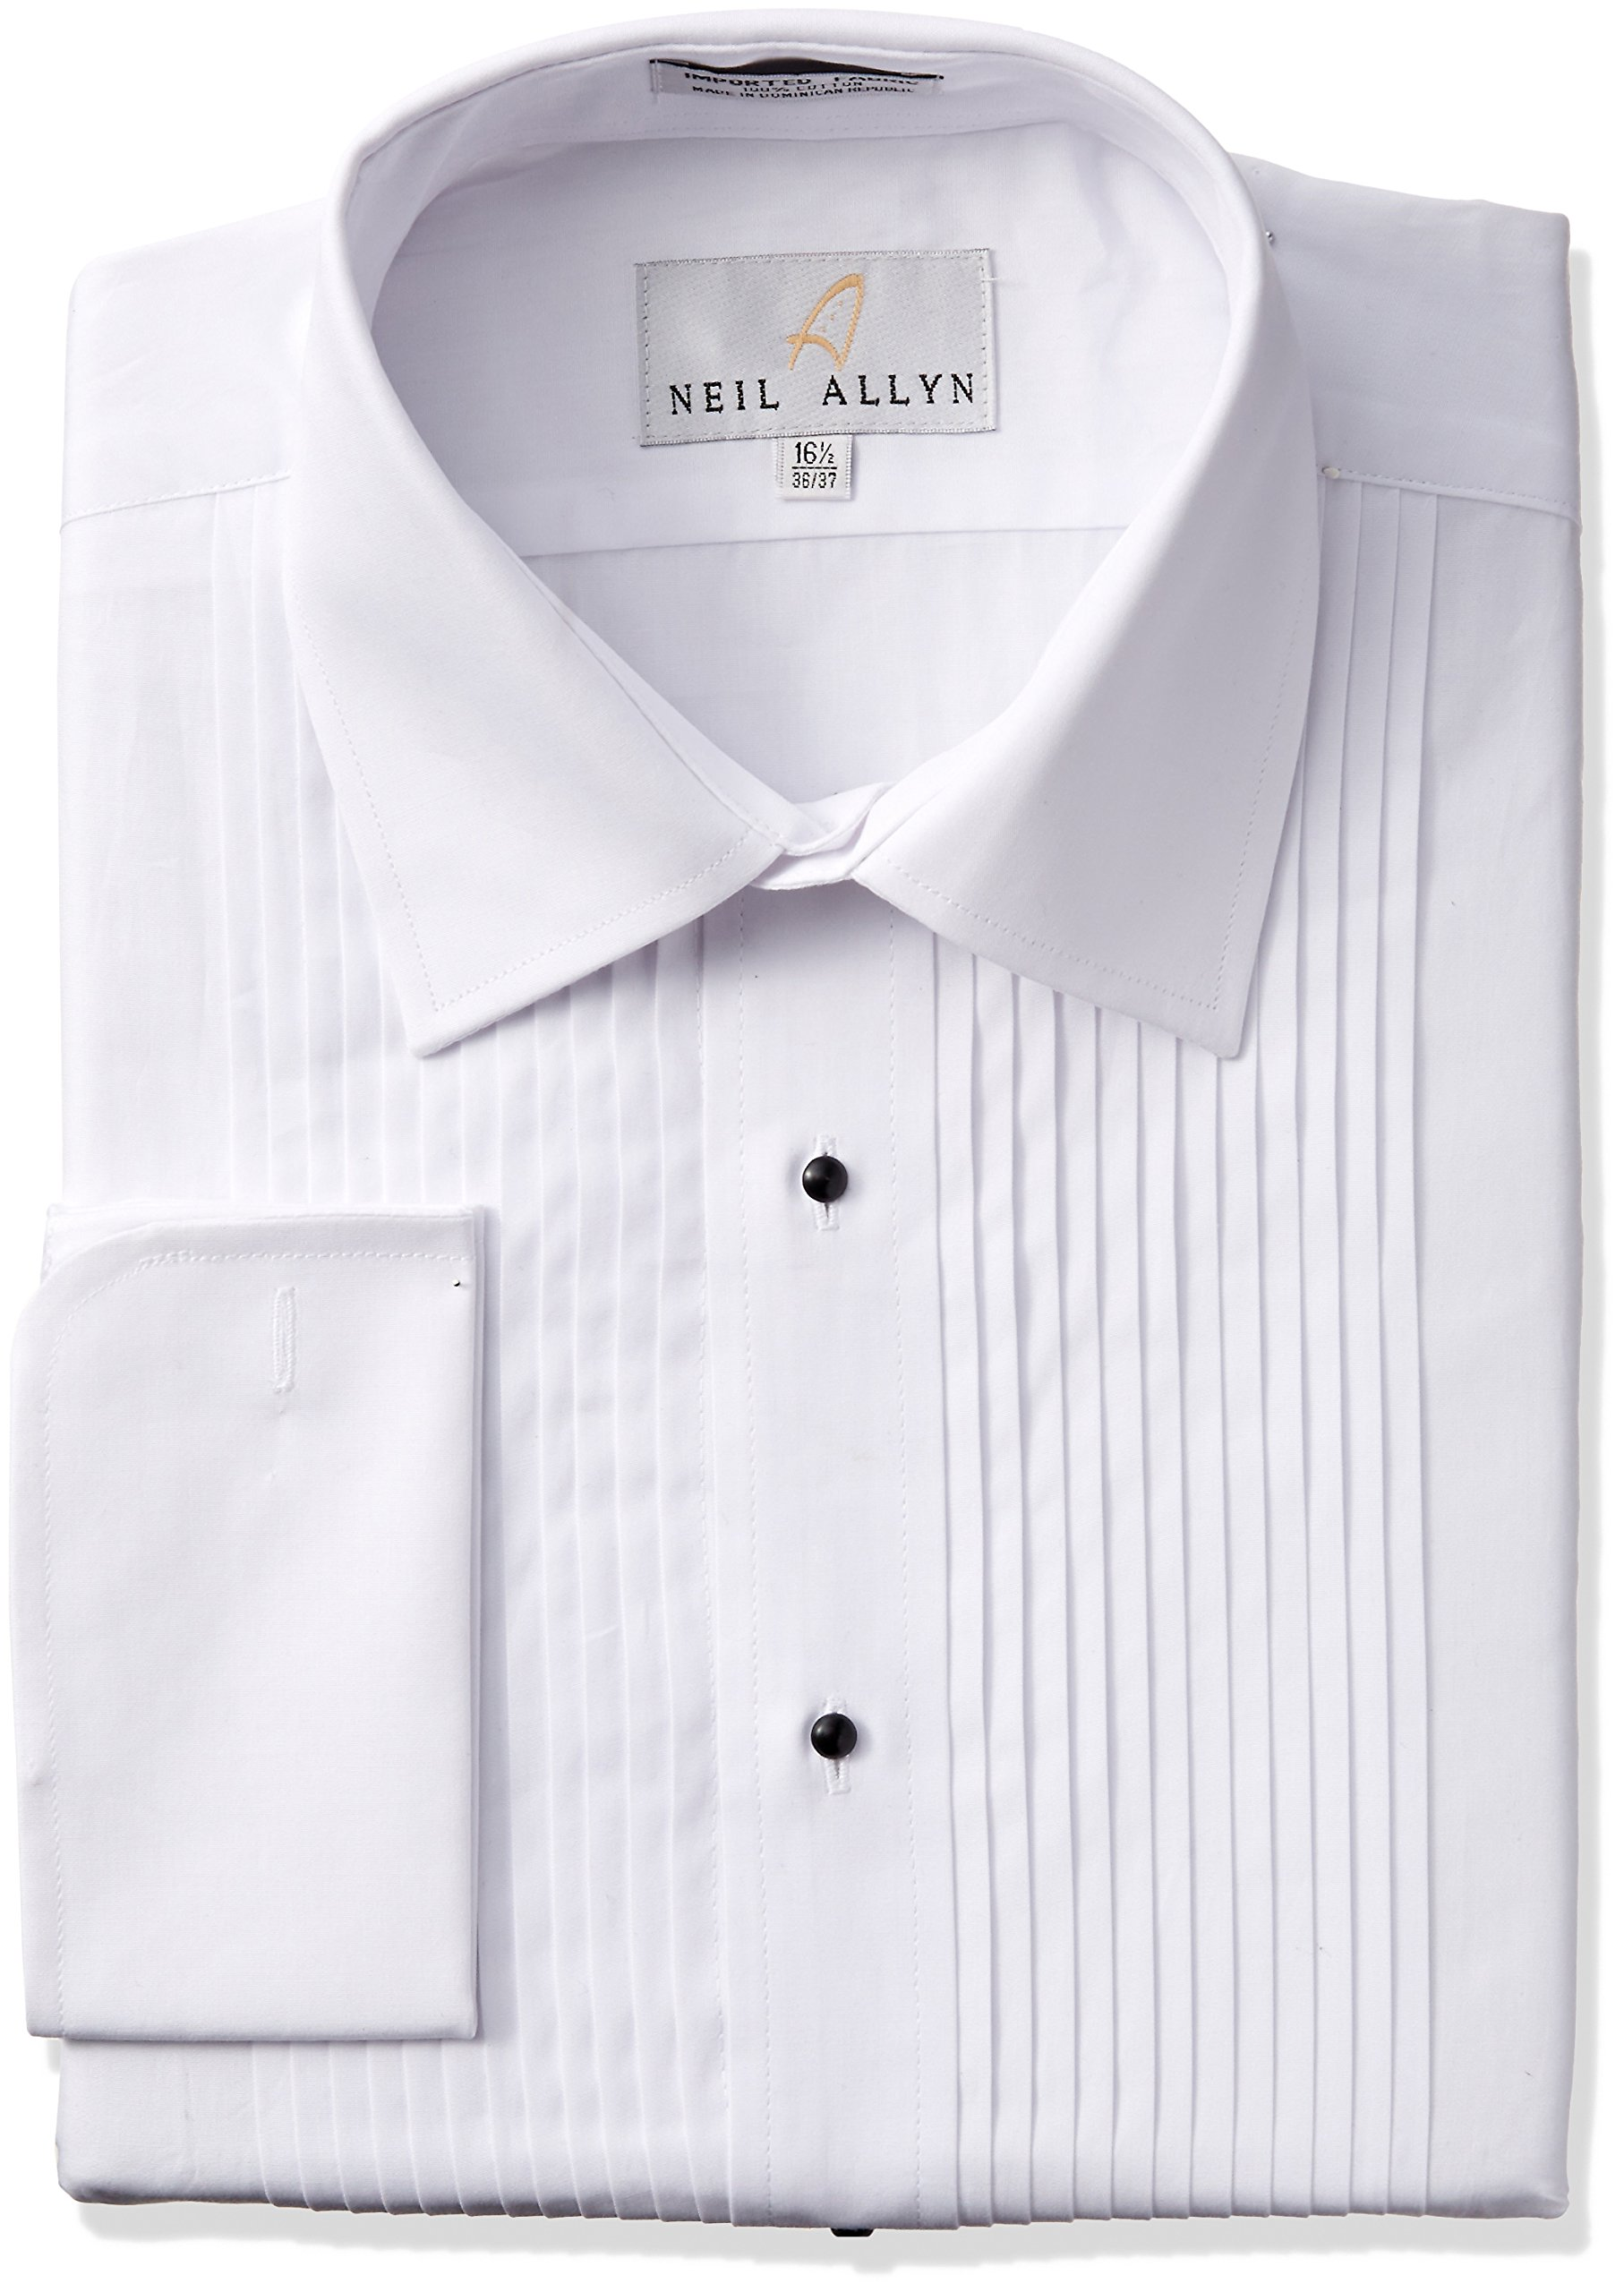 Tuxedo Shirt By Neil Allyn - 100% Cotton with Laydown Collar and French Cuffs (15.5 - 34/35), White by Neil Allyn